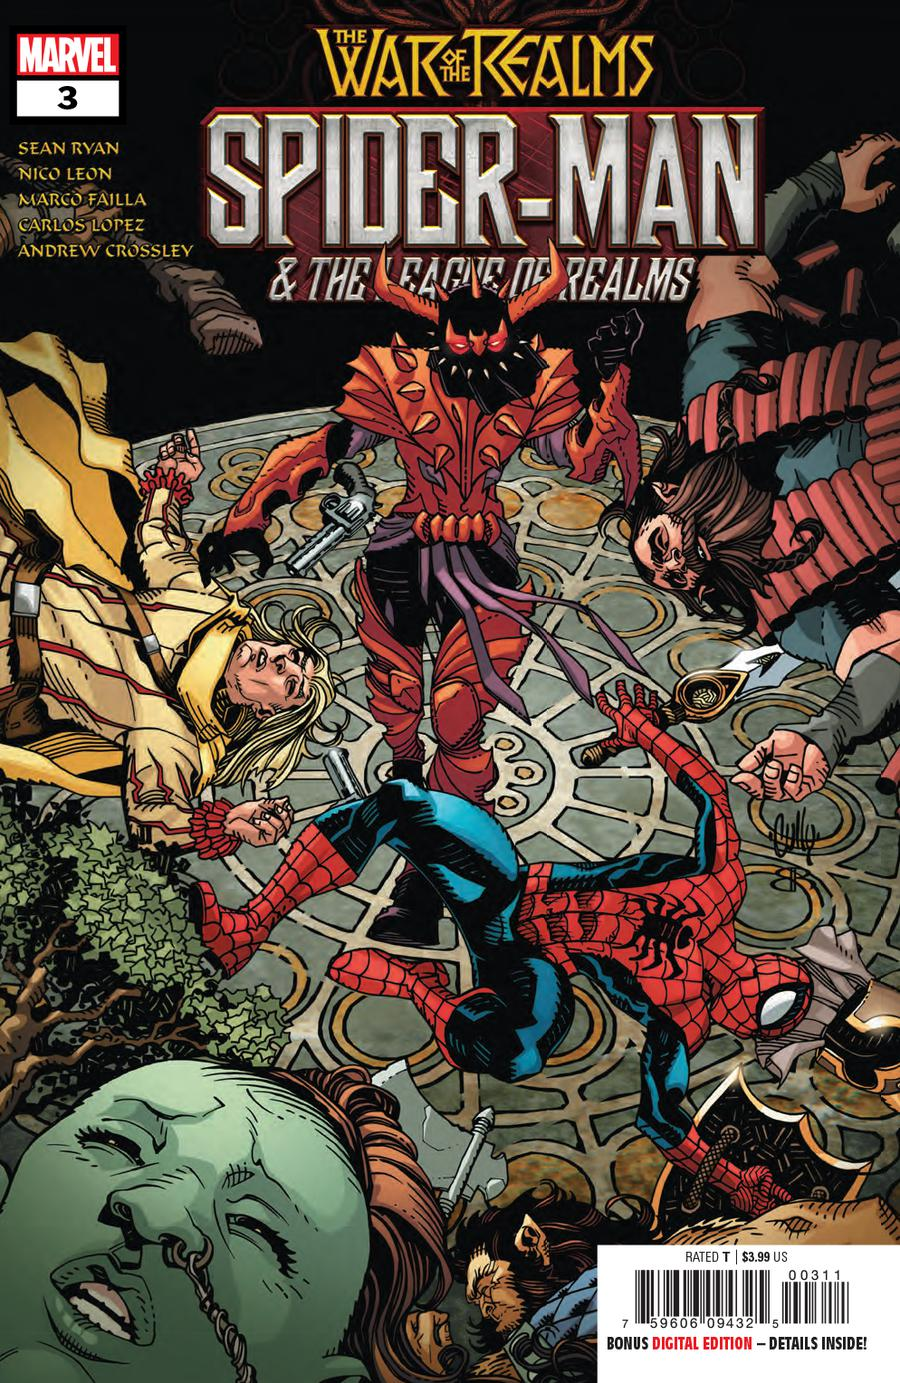 War Of The Realms Spider-Man And The League Of Realms #3 Cover A Regular Ken Lashley Cover